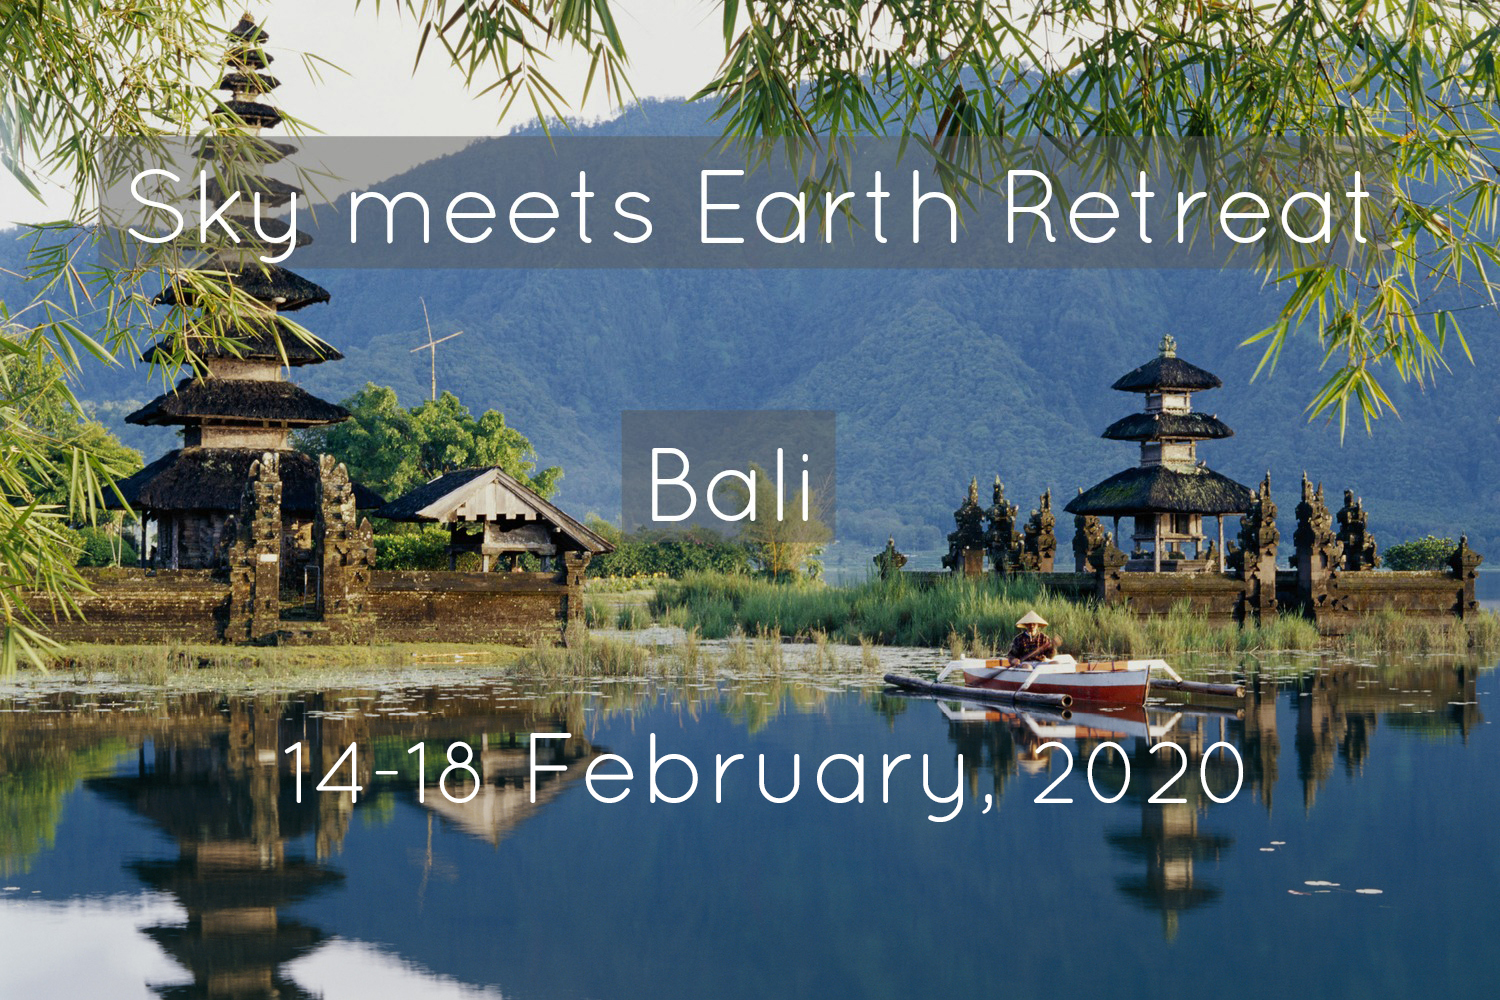 bali yoga diving dance retreat february 2020